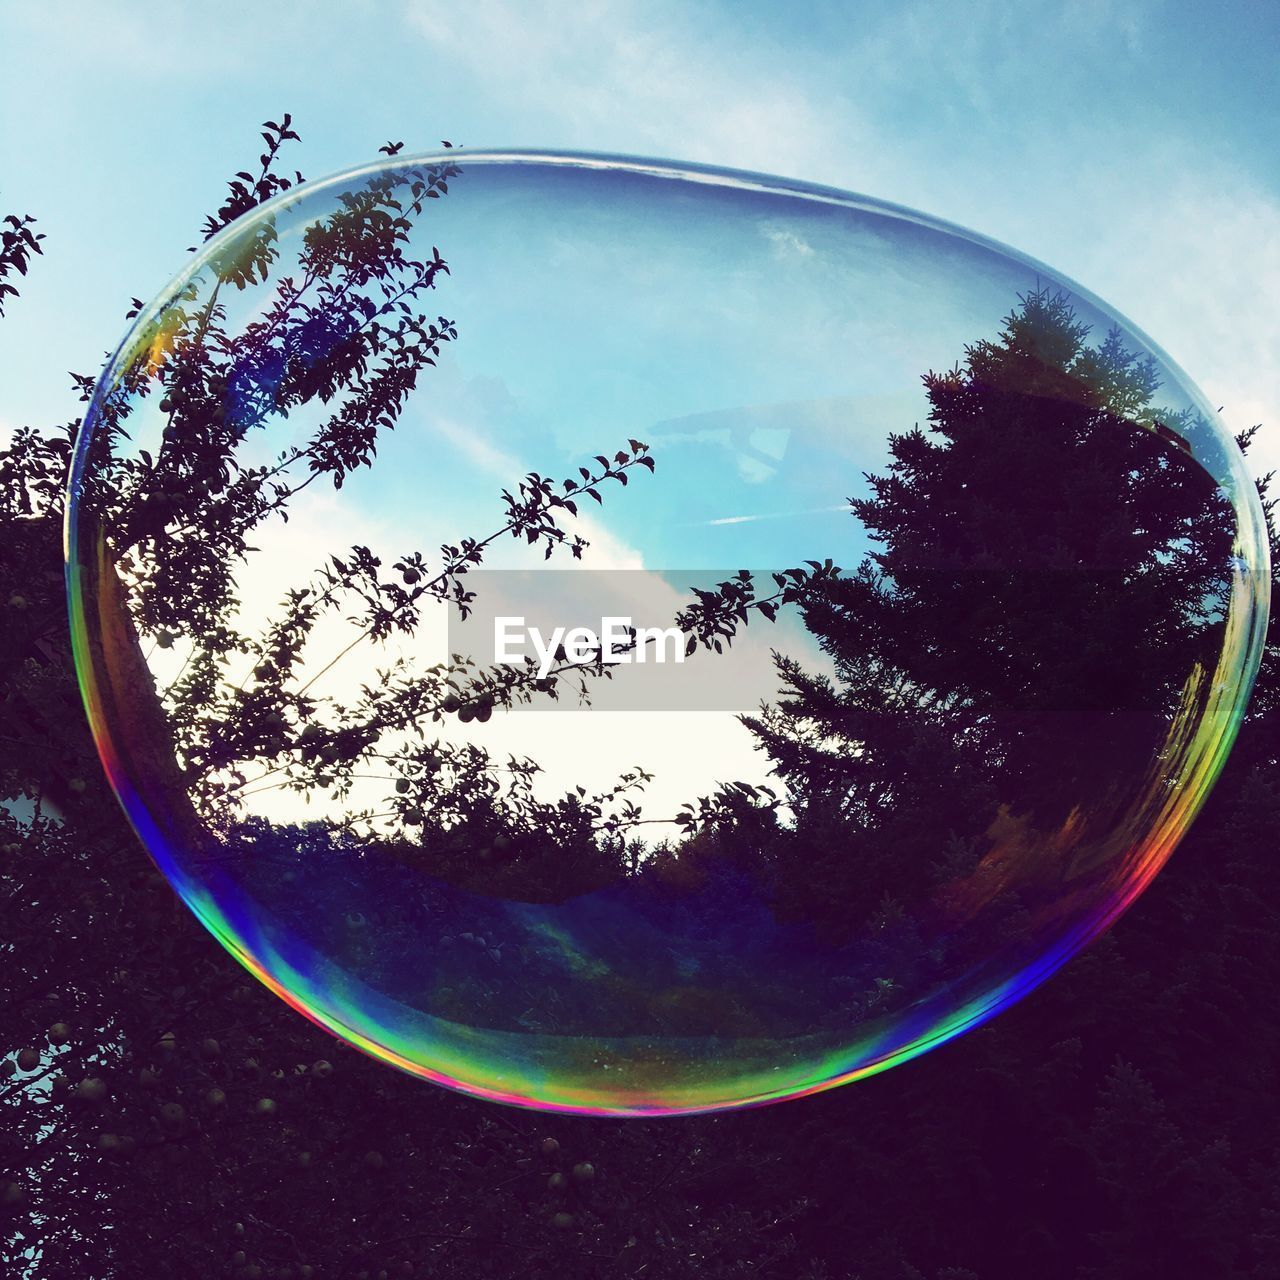 circle, reflection, bubble, no people, day, tree, sky, close-up, outdoors, nature, fish-eye lens, bubble wand, beauty in nature, fragility, water